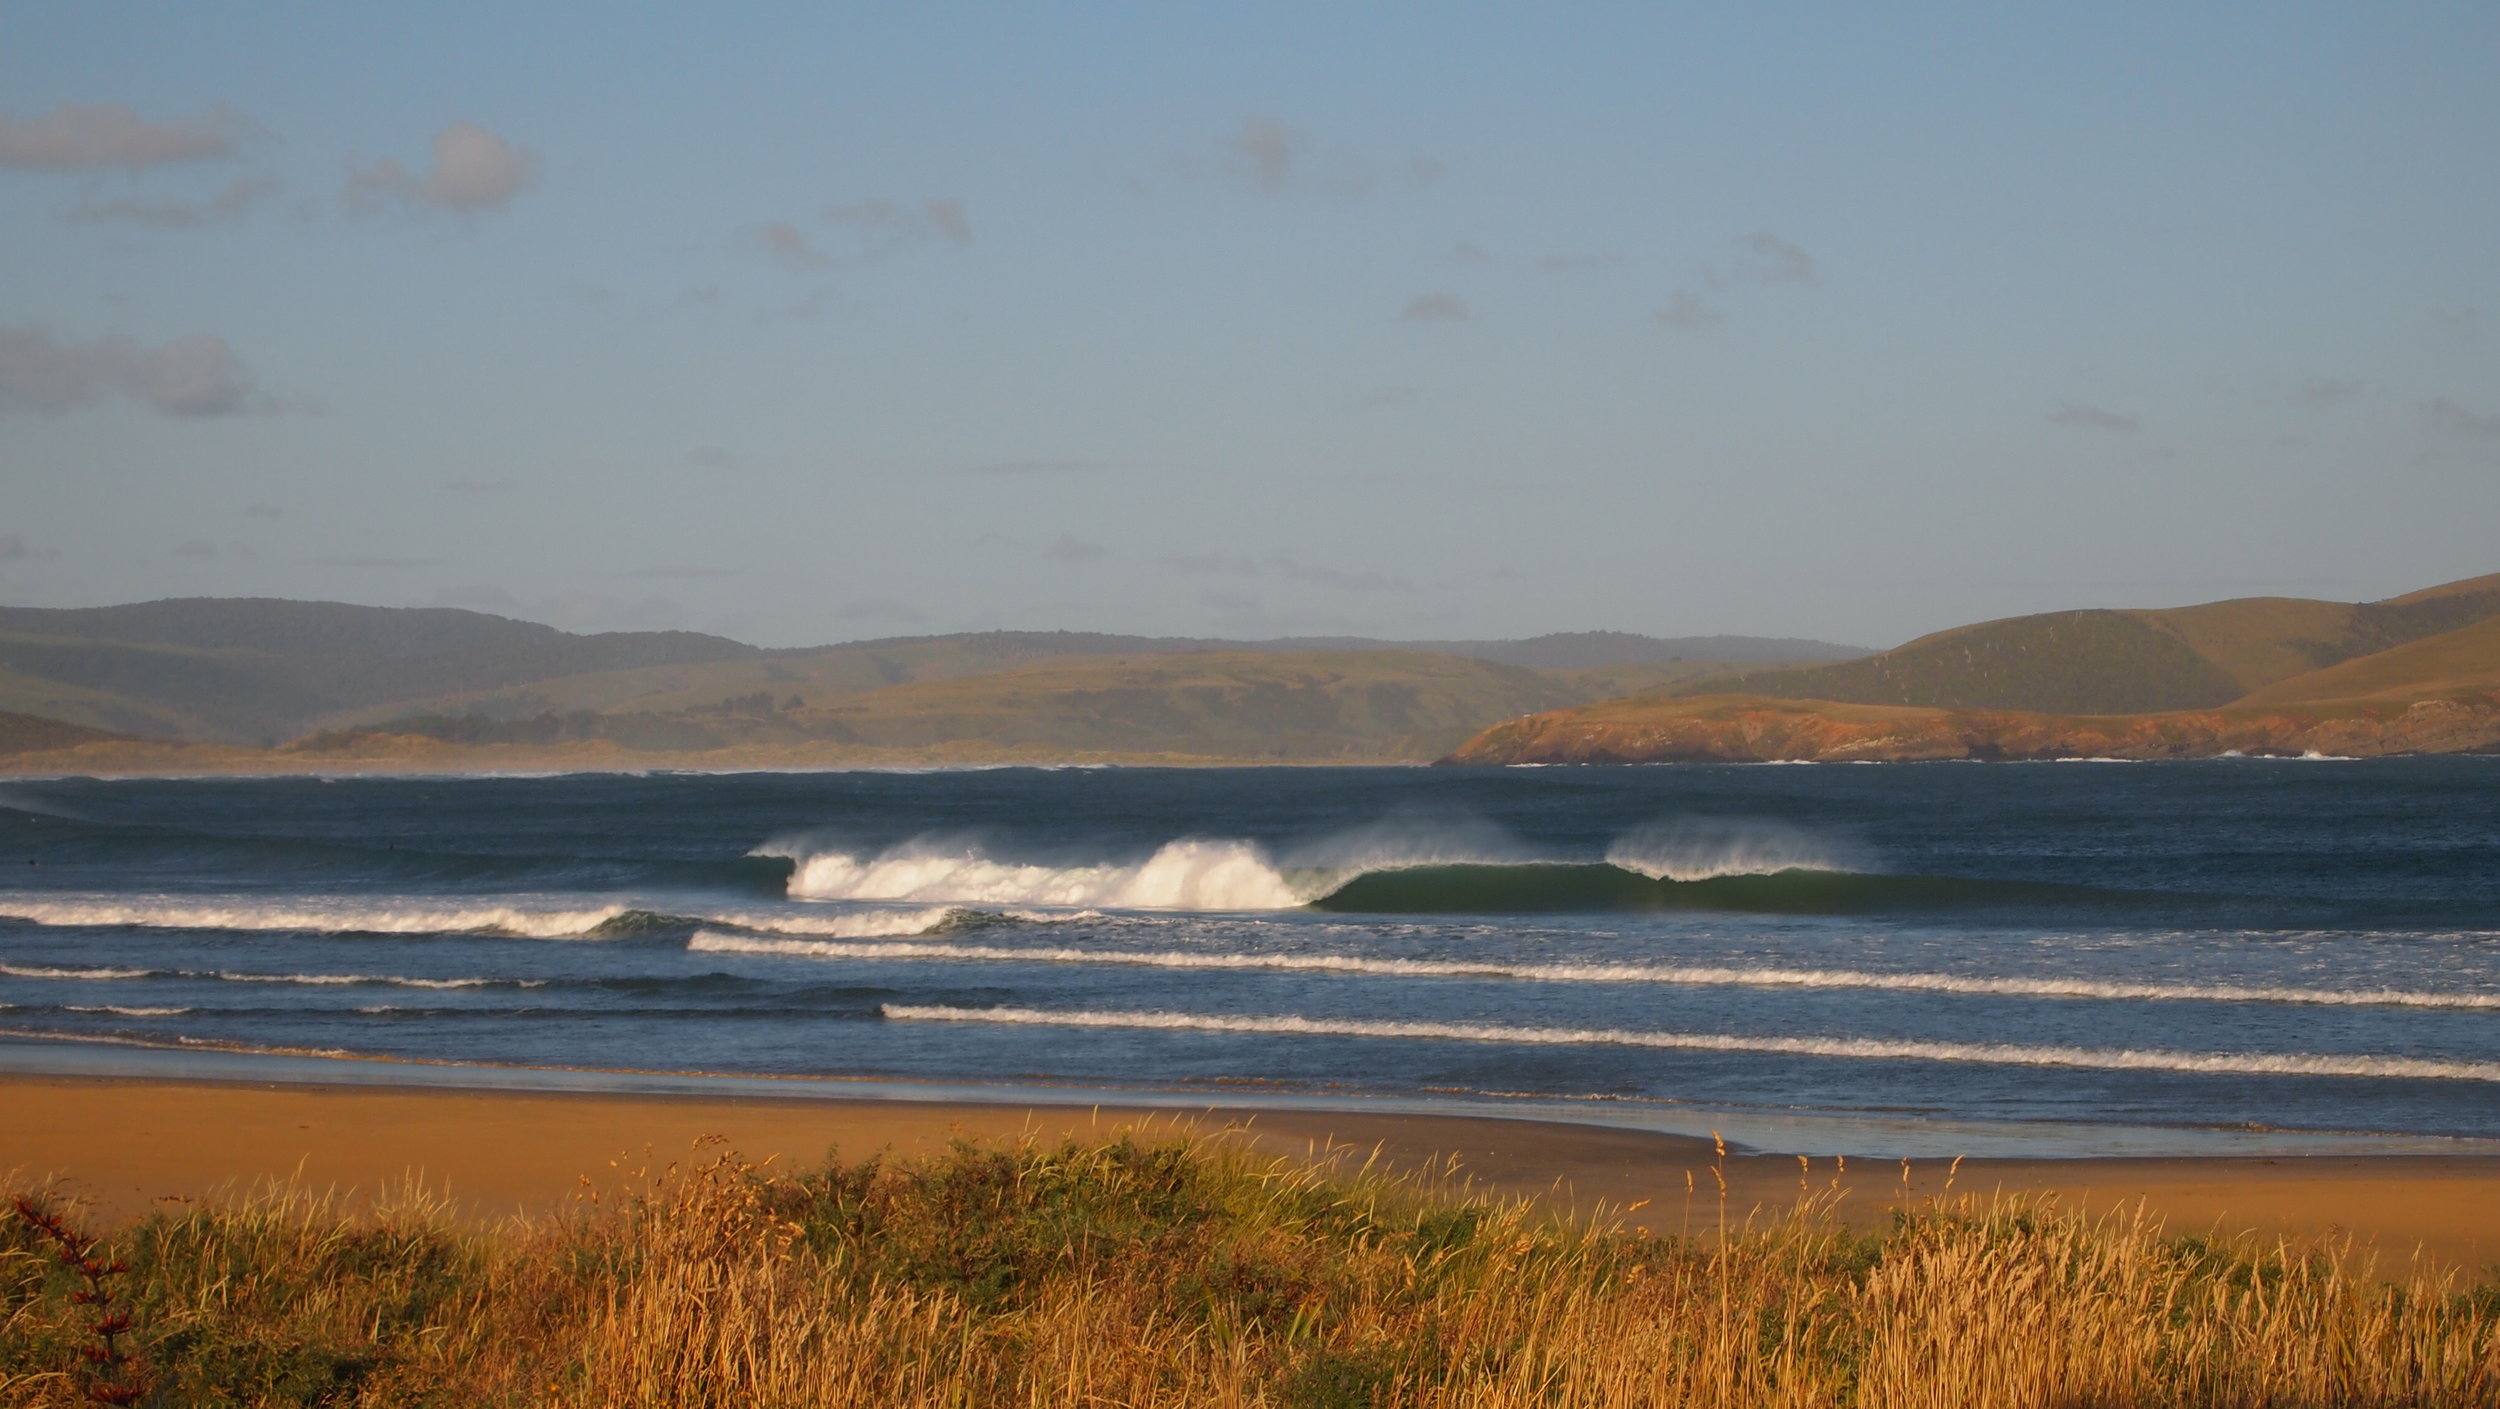 Curio Bay, The Catlins (image by Jacqui Gibson).